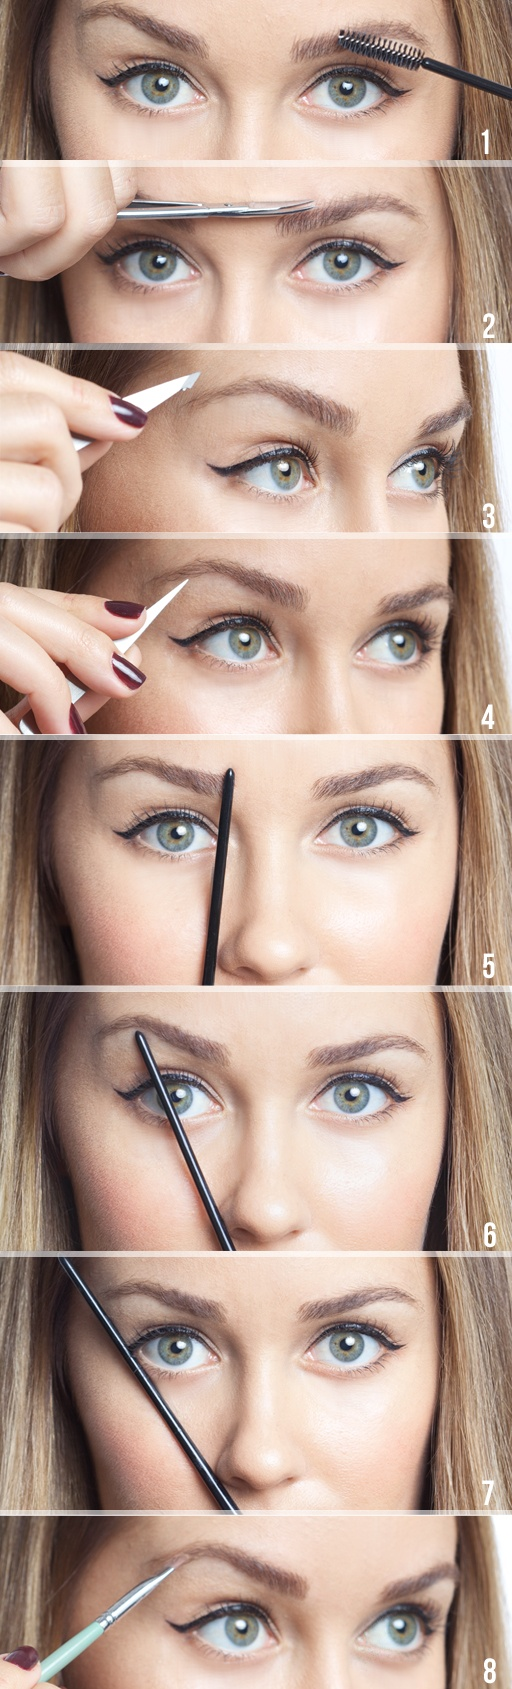 Maintain your eyebrows!